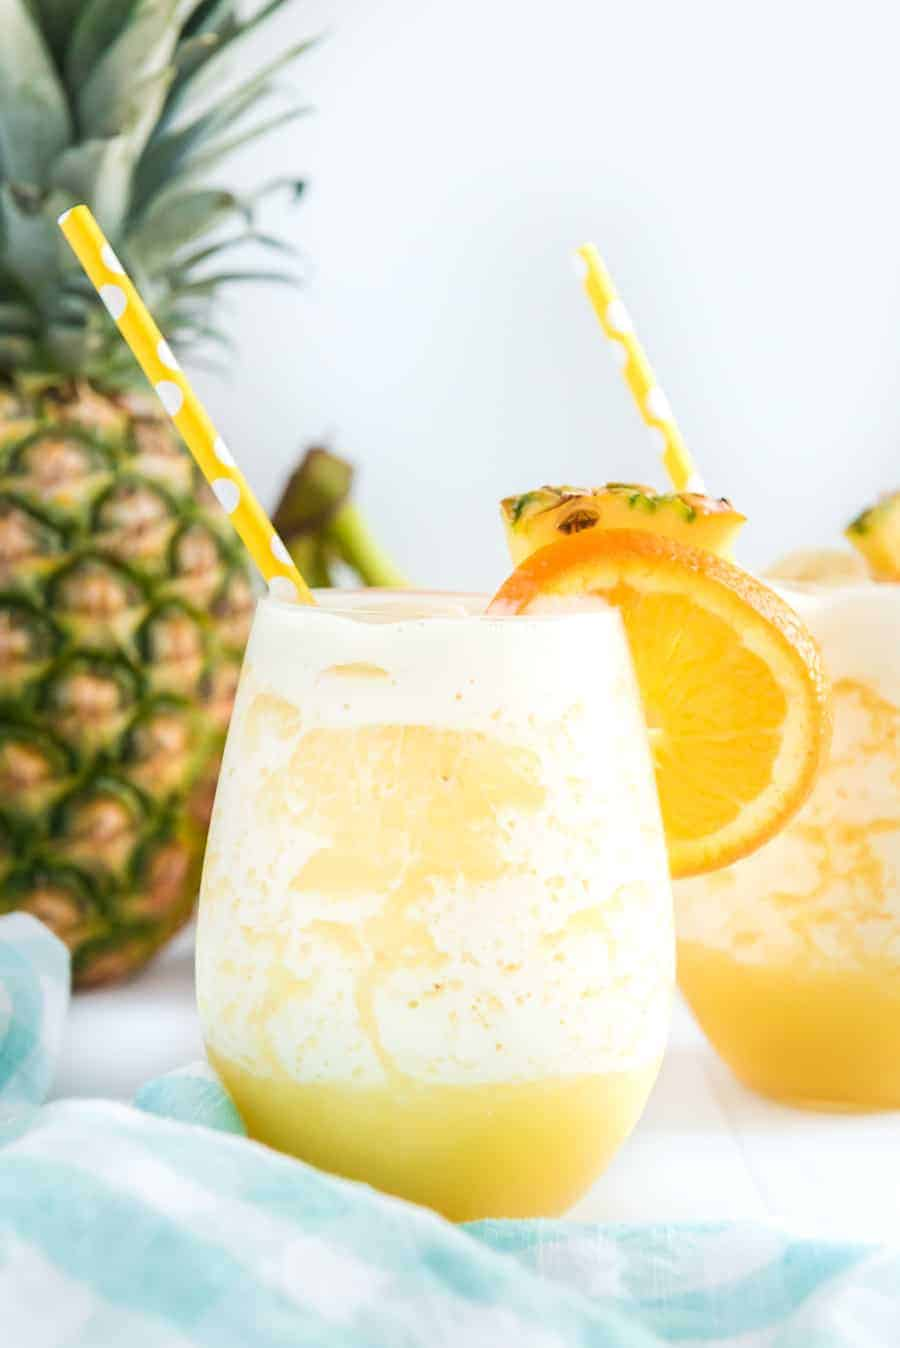 You can't go wrong with the refreshing and tropical flavors of this orange pineapple banana smoothie! #smoothie #fruitsmoothie #tropicalsmoothie #orange #pineapple #banana